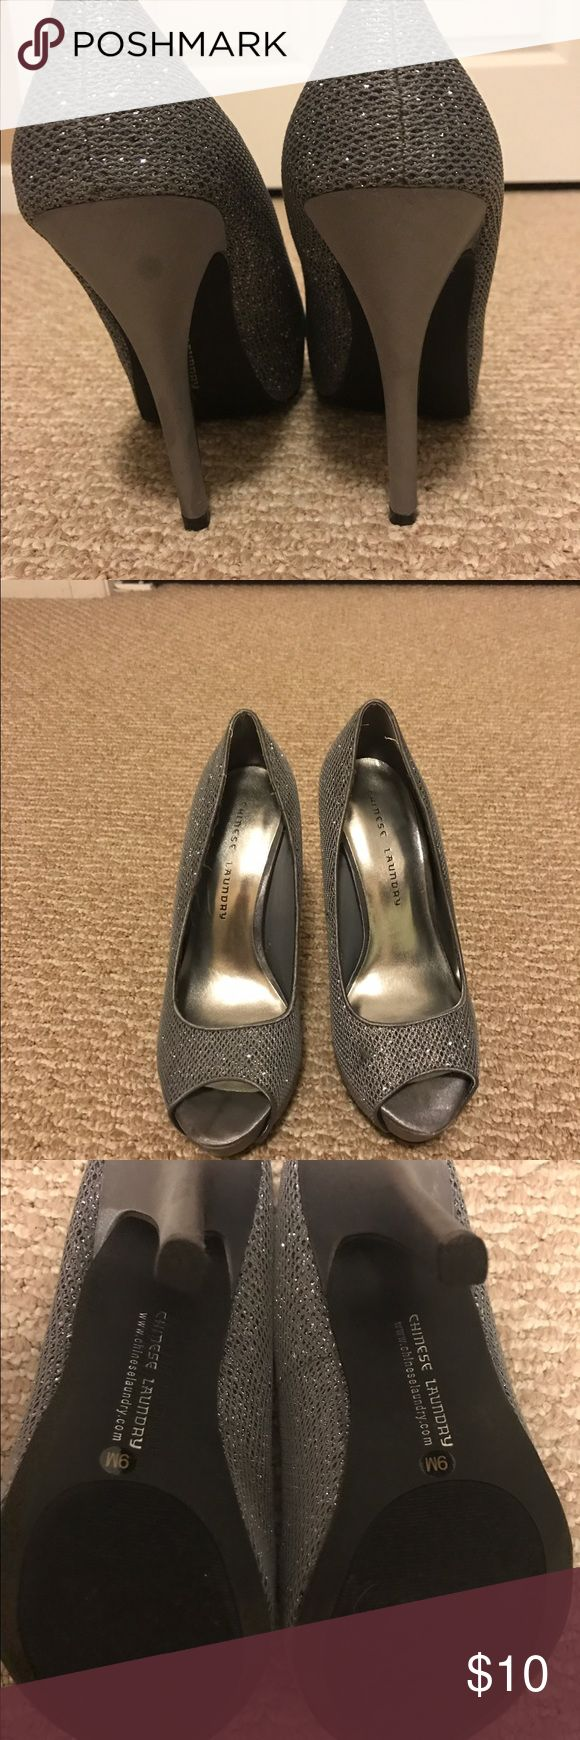 Pumped shoes Sparkly Silver pumps 👠 high hill N/A Shoes Heels